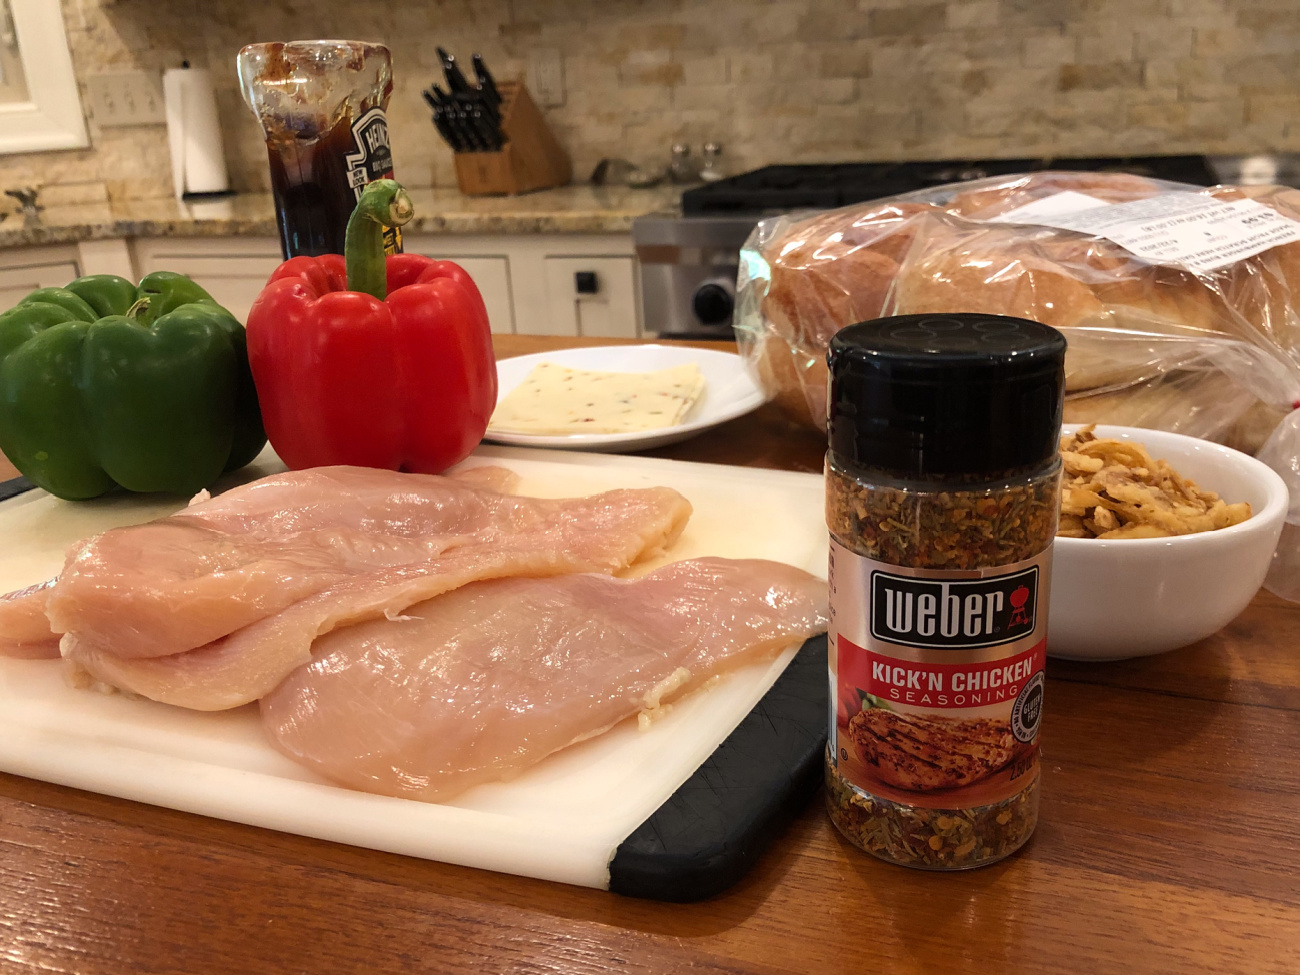 Spice Up Your Meals With Weber Seasoning - Try My Kick'n Chicken Sandwich! on I Heart Publix 1